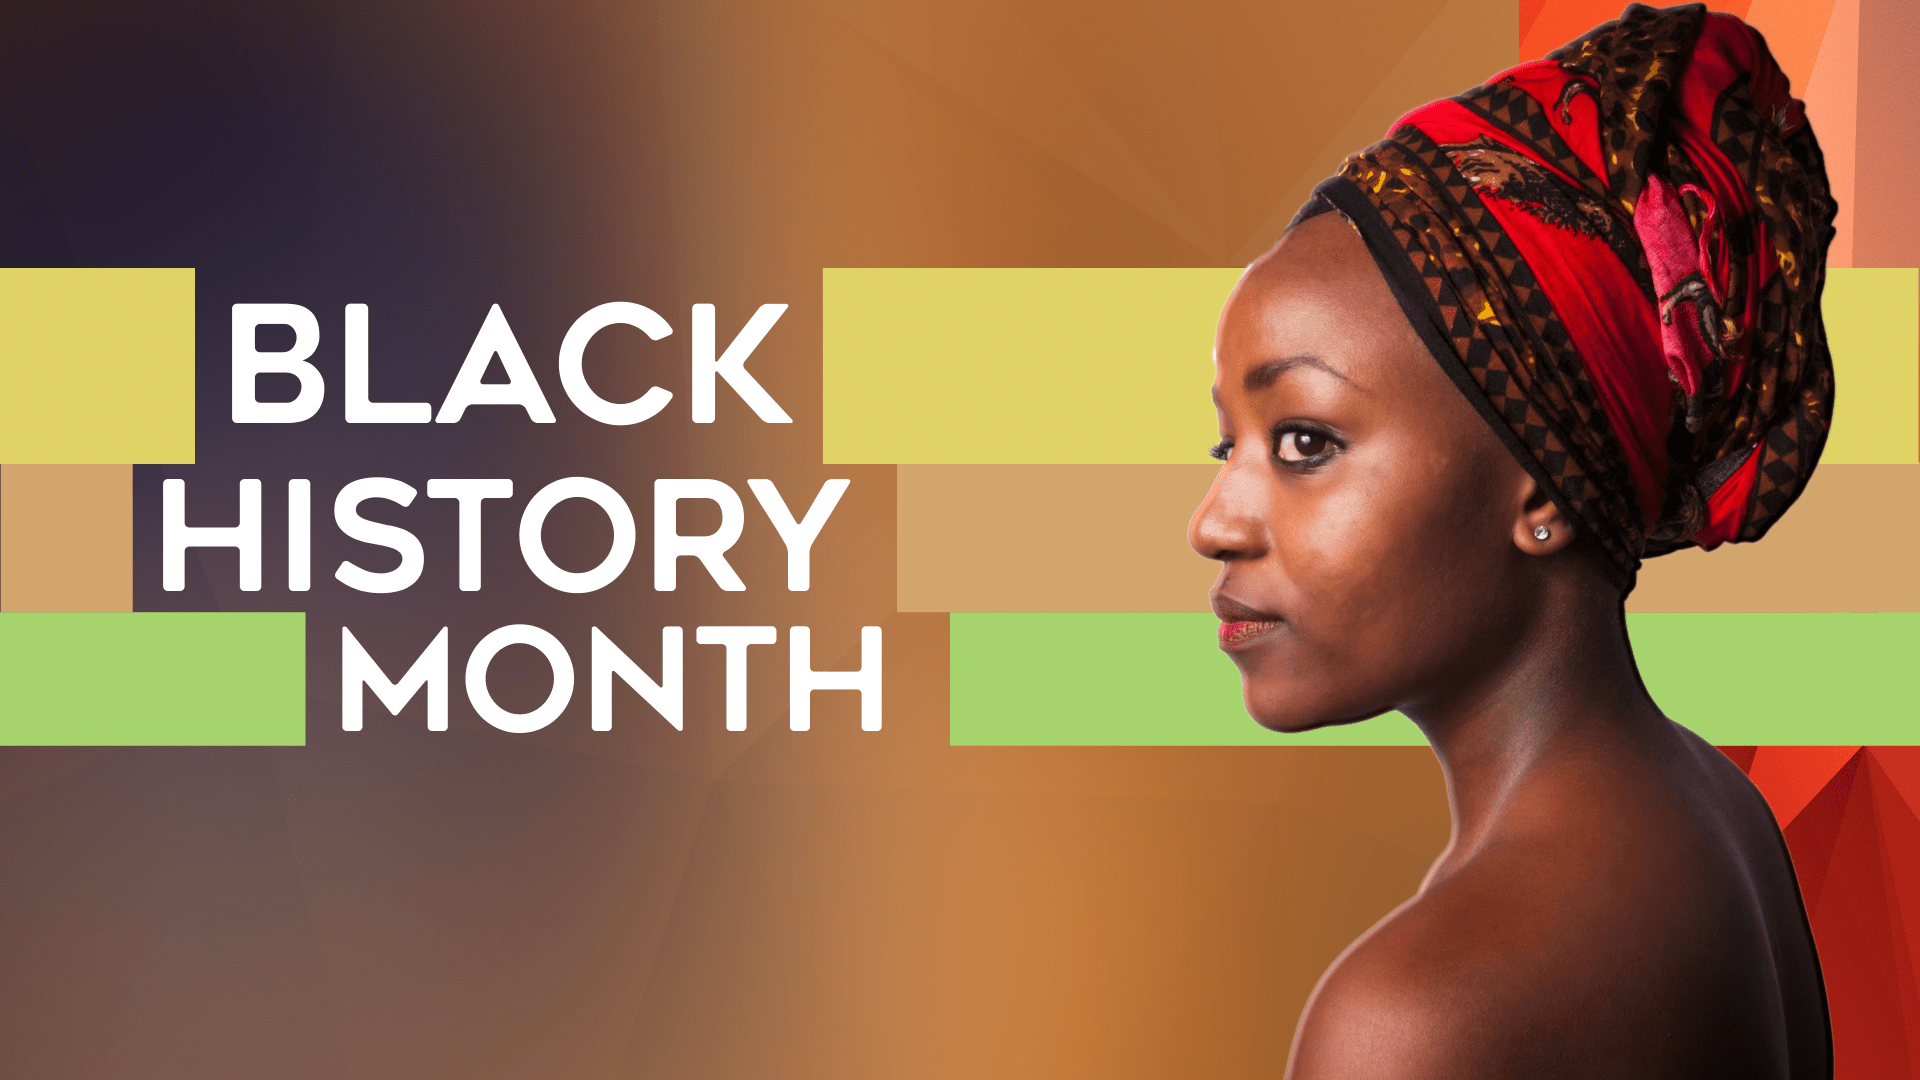 Top 5 Bible Verses For Black History Month Progressive Church Media